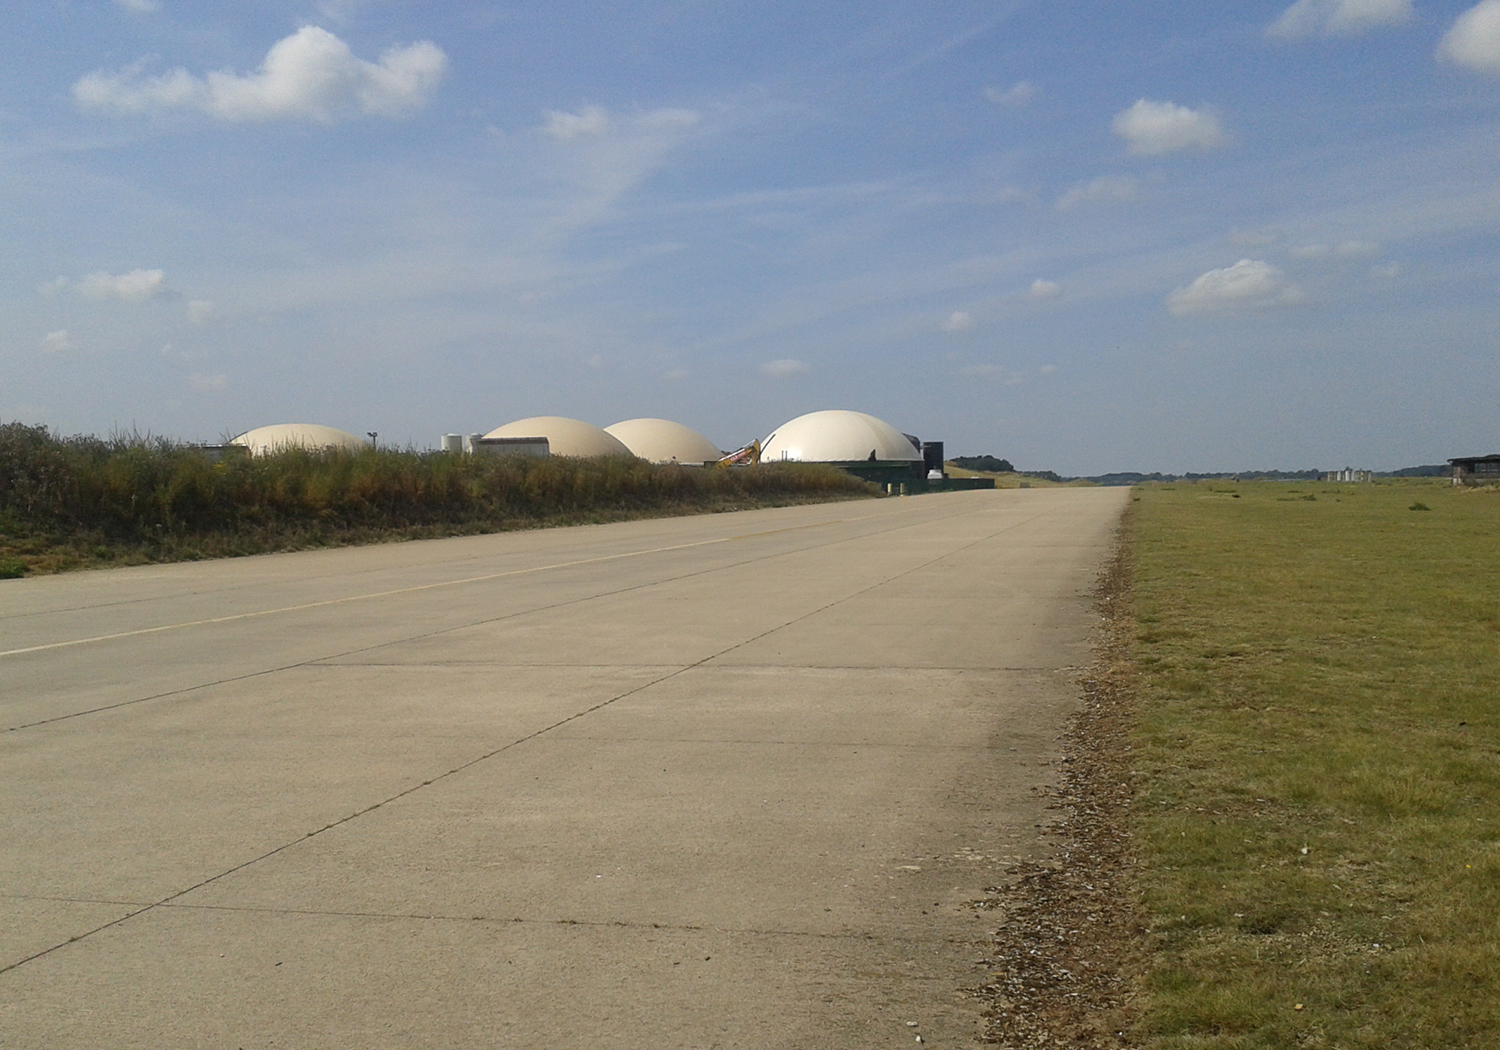 Projects-EnergyClimChg-AgriGen-DomesPhoto-1500x1050